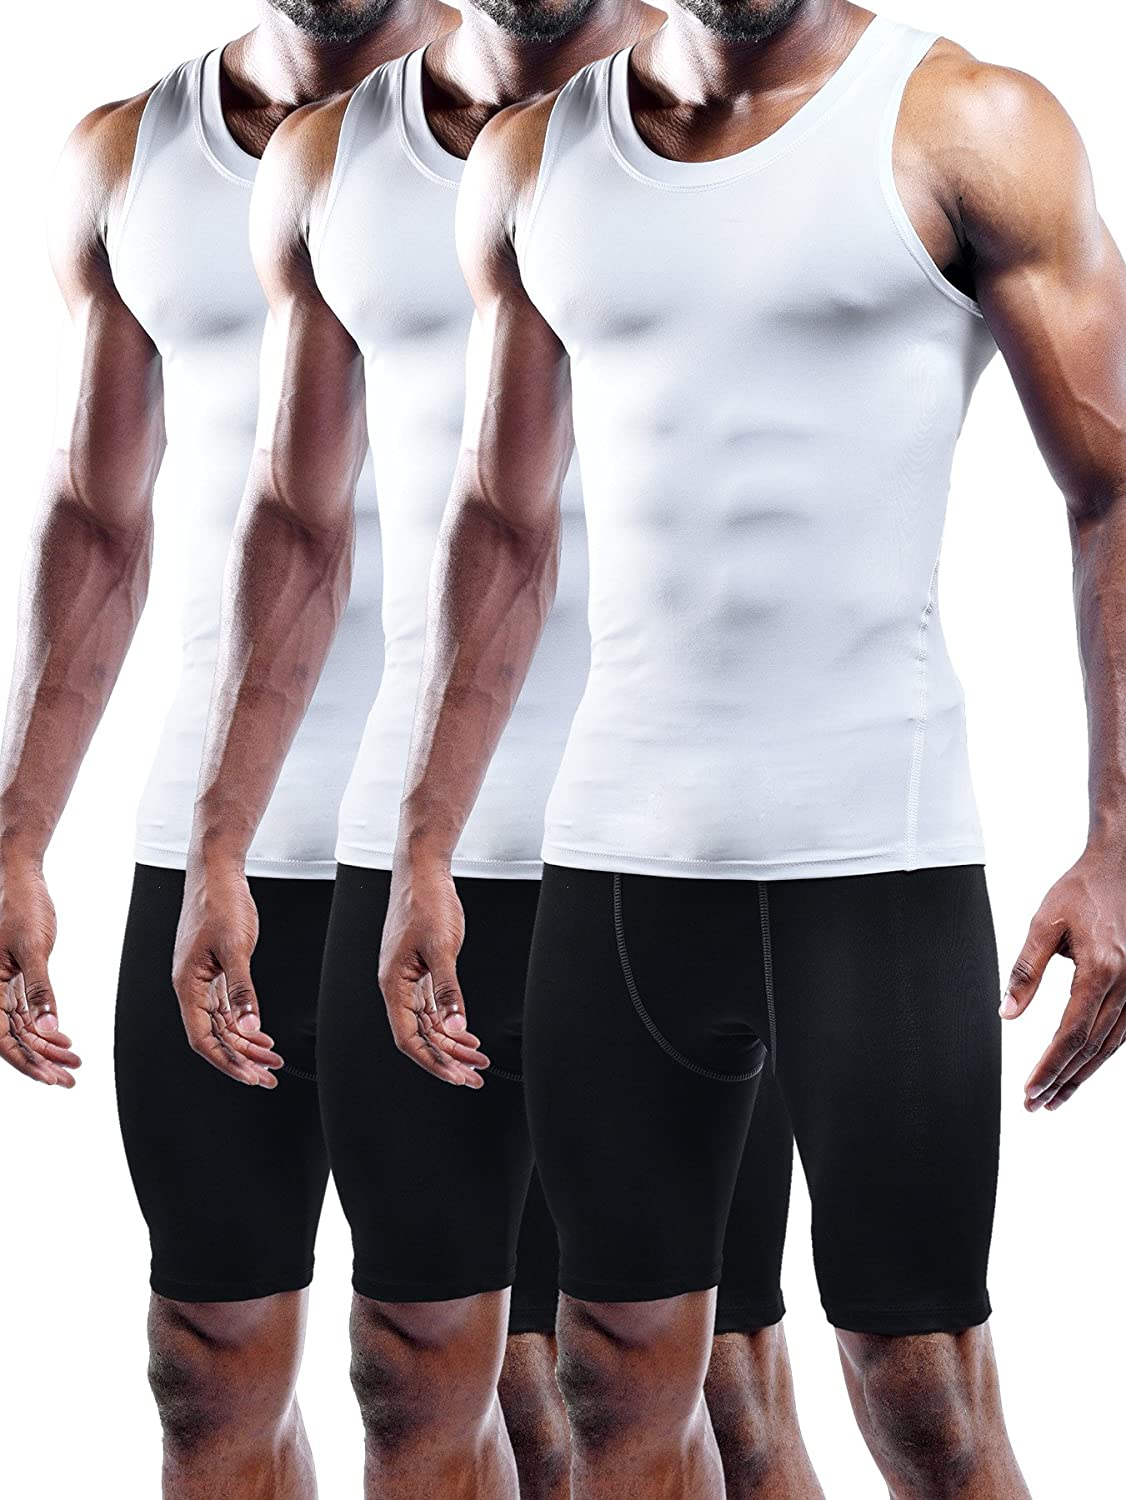 Max 53% OFF Neleus Reservation Men's 3 Pack Dry Top Tank Compression Fit